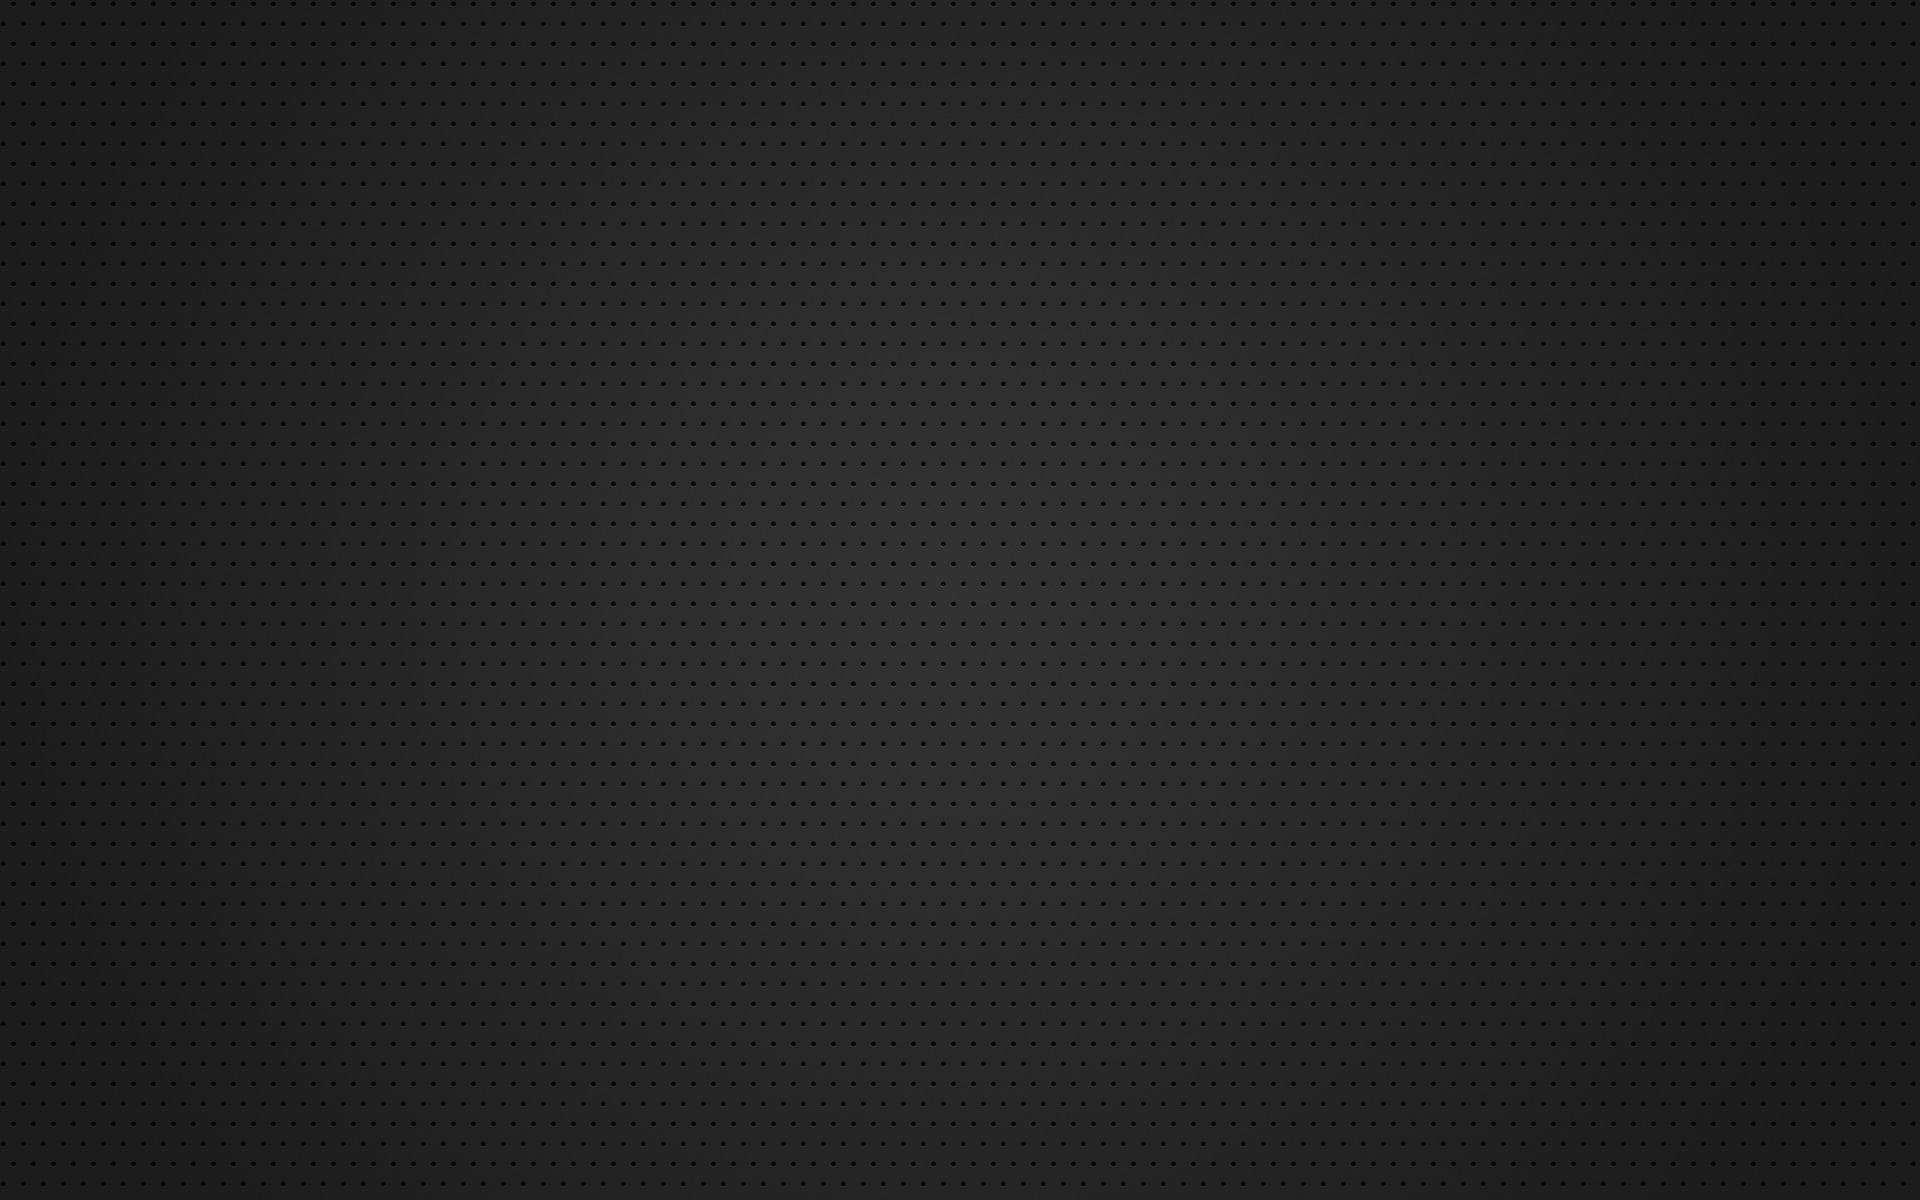 Wallpaper texture, background, black, matte, perforation wallpapers textures - download